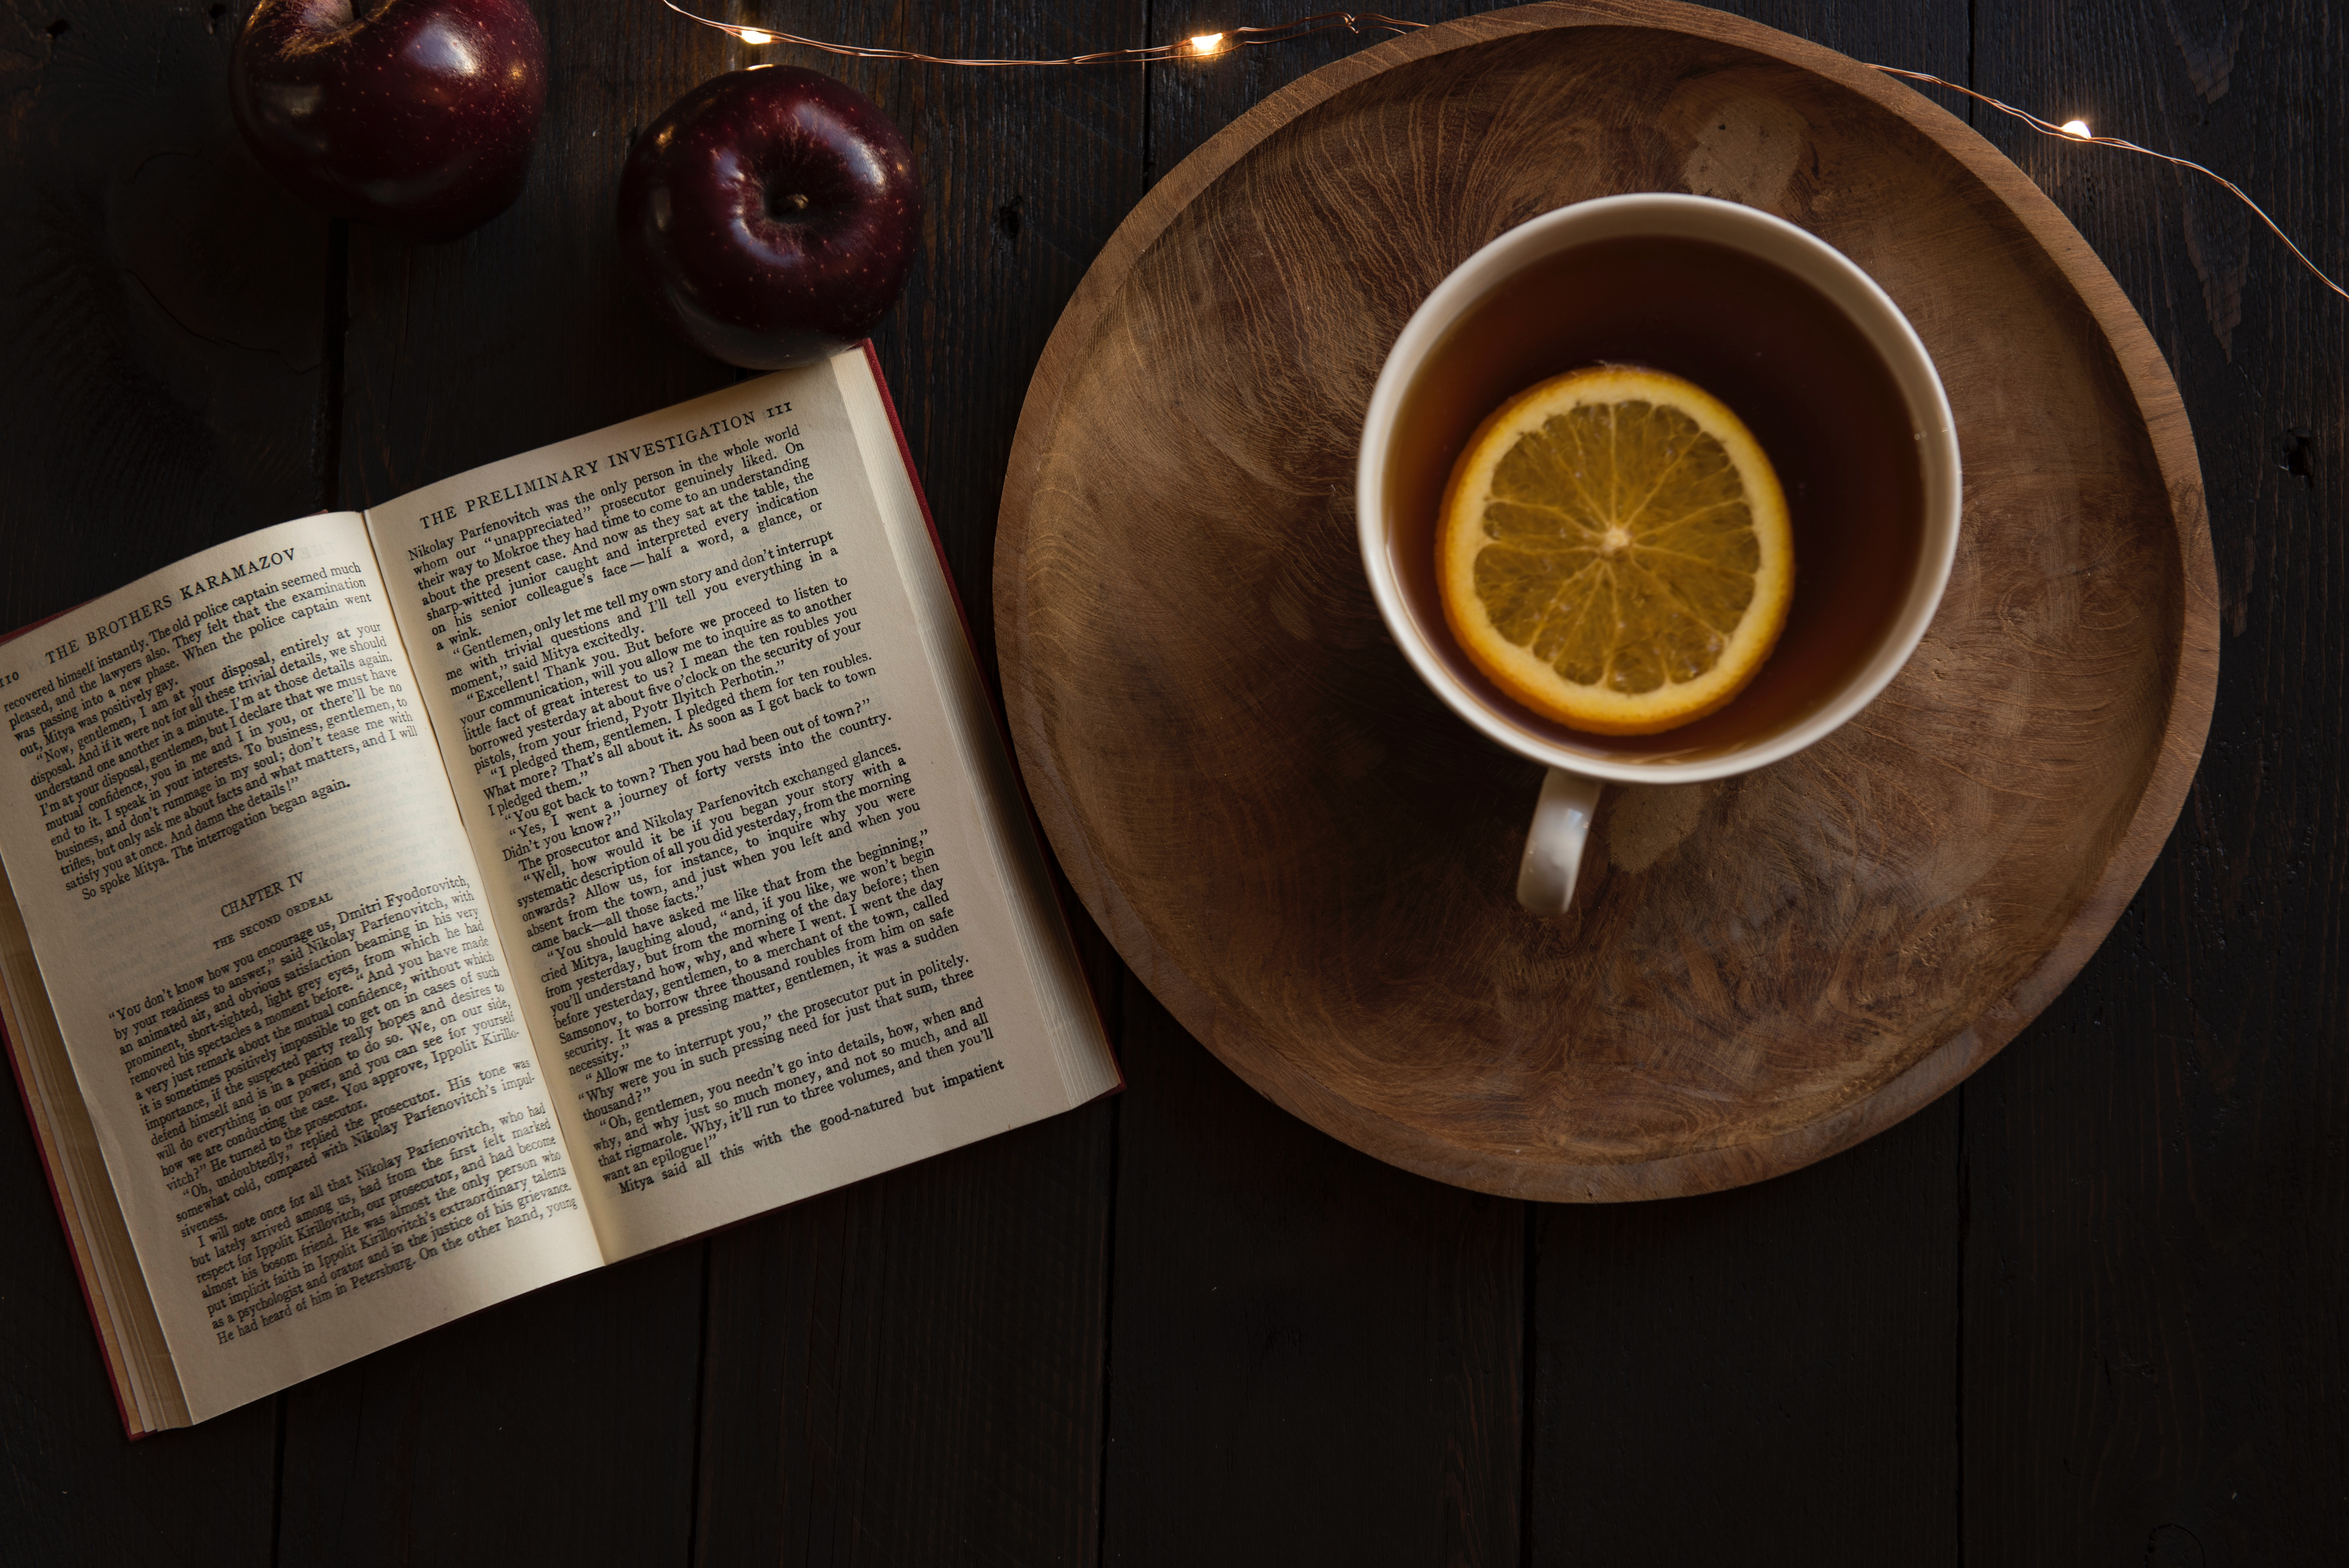 Self-publishing News: When Publishing Becomes The Story